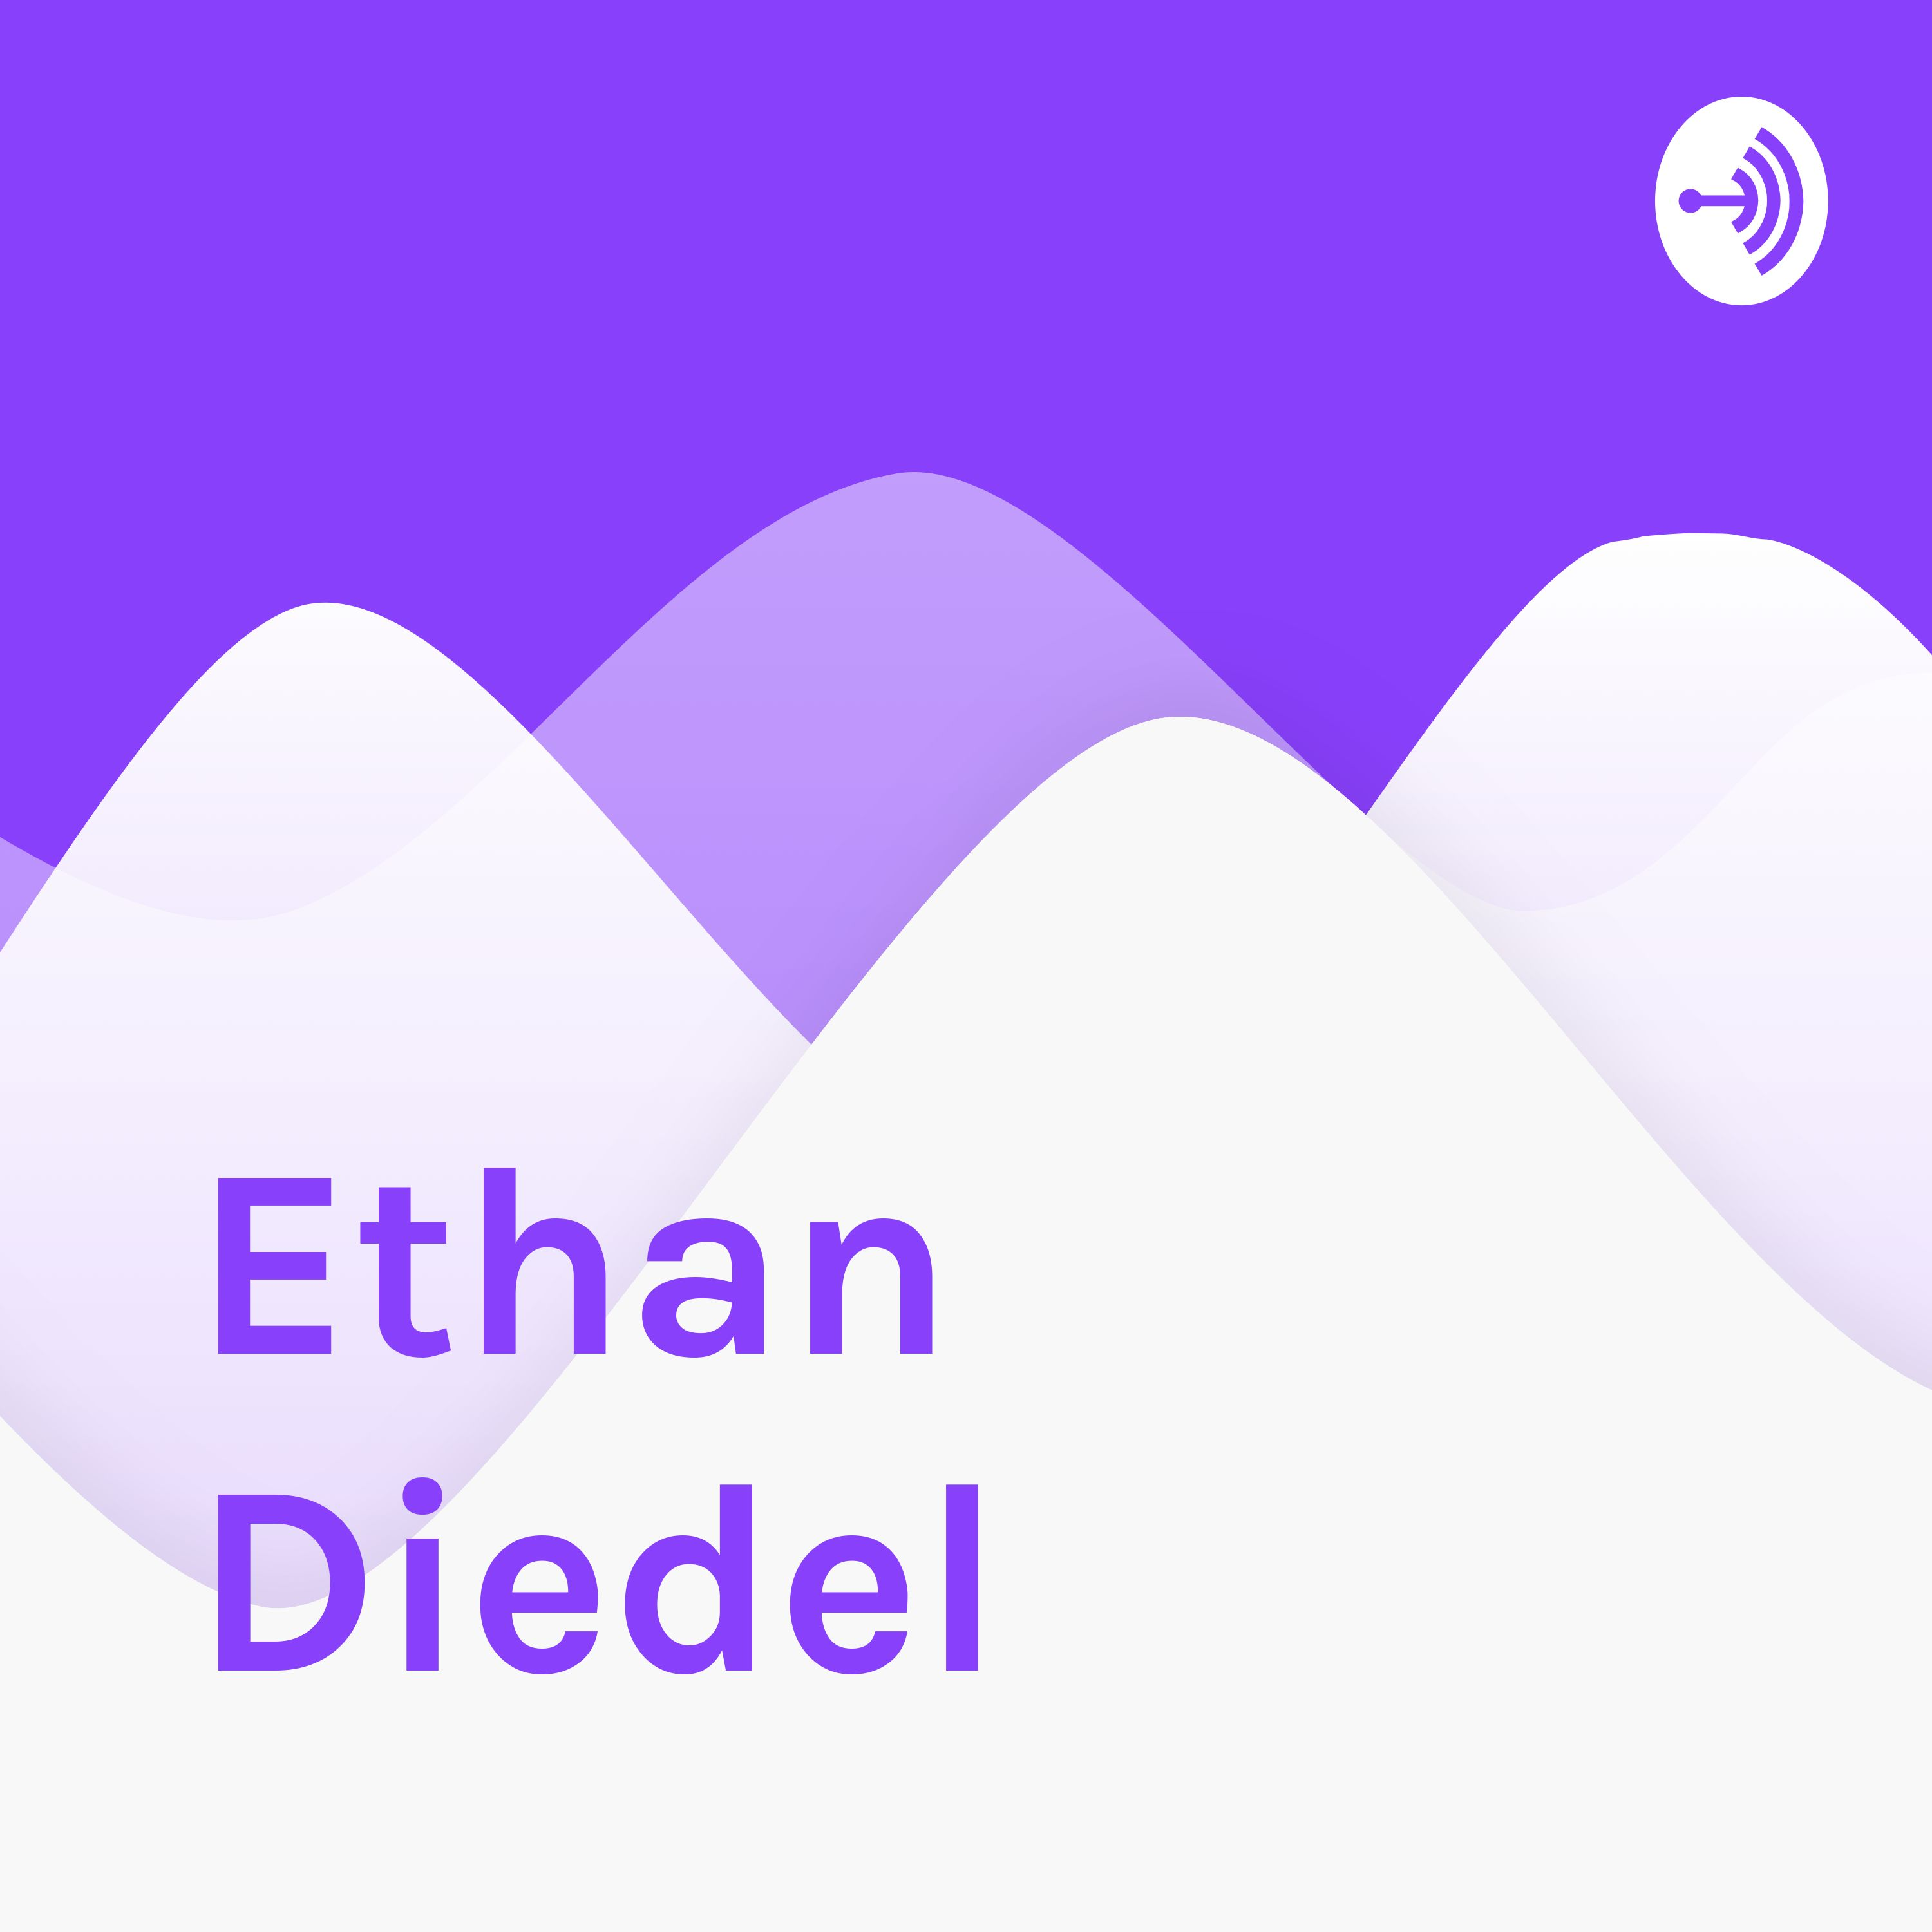 Ethan Diedel journey